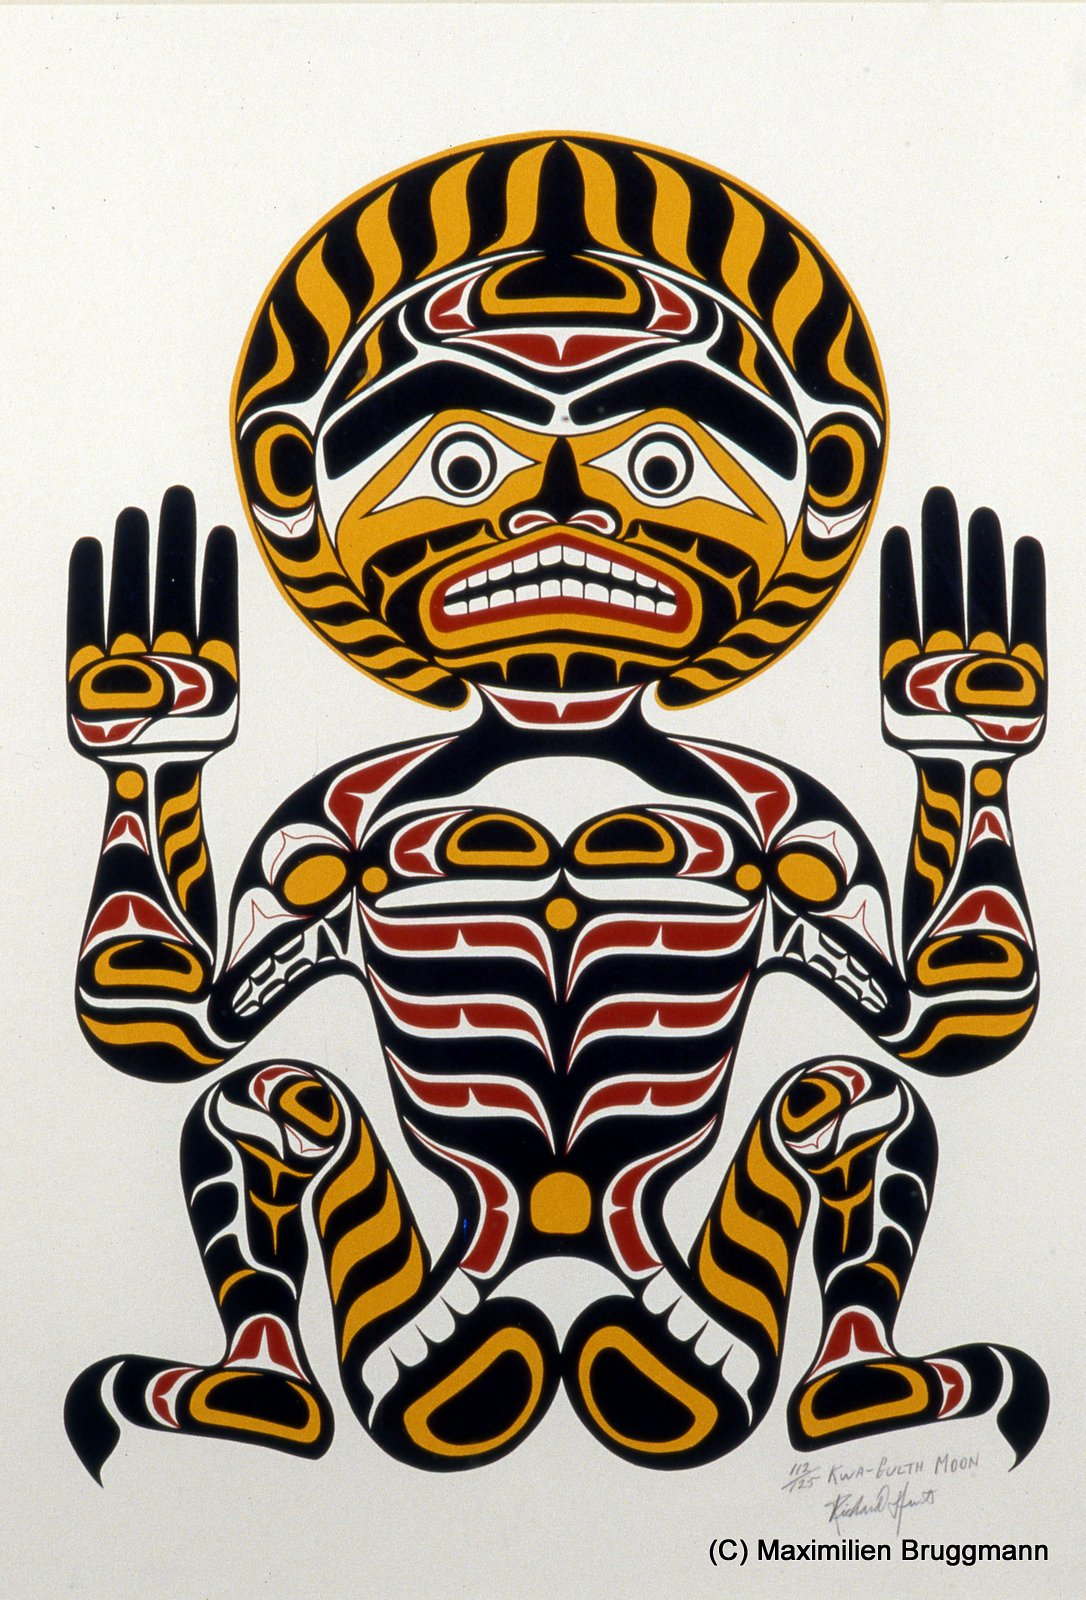 color yellow, typical characteristics of the Kwakiutl style. (65cm, 1978)